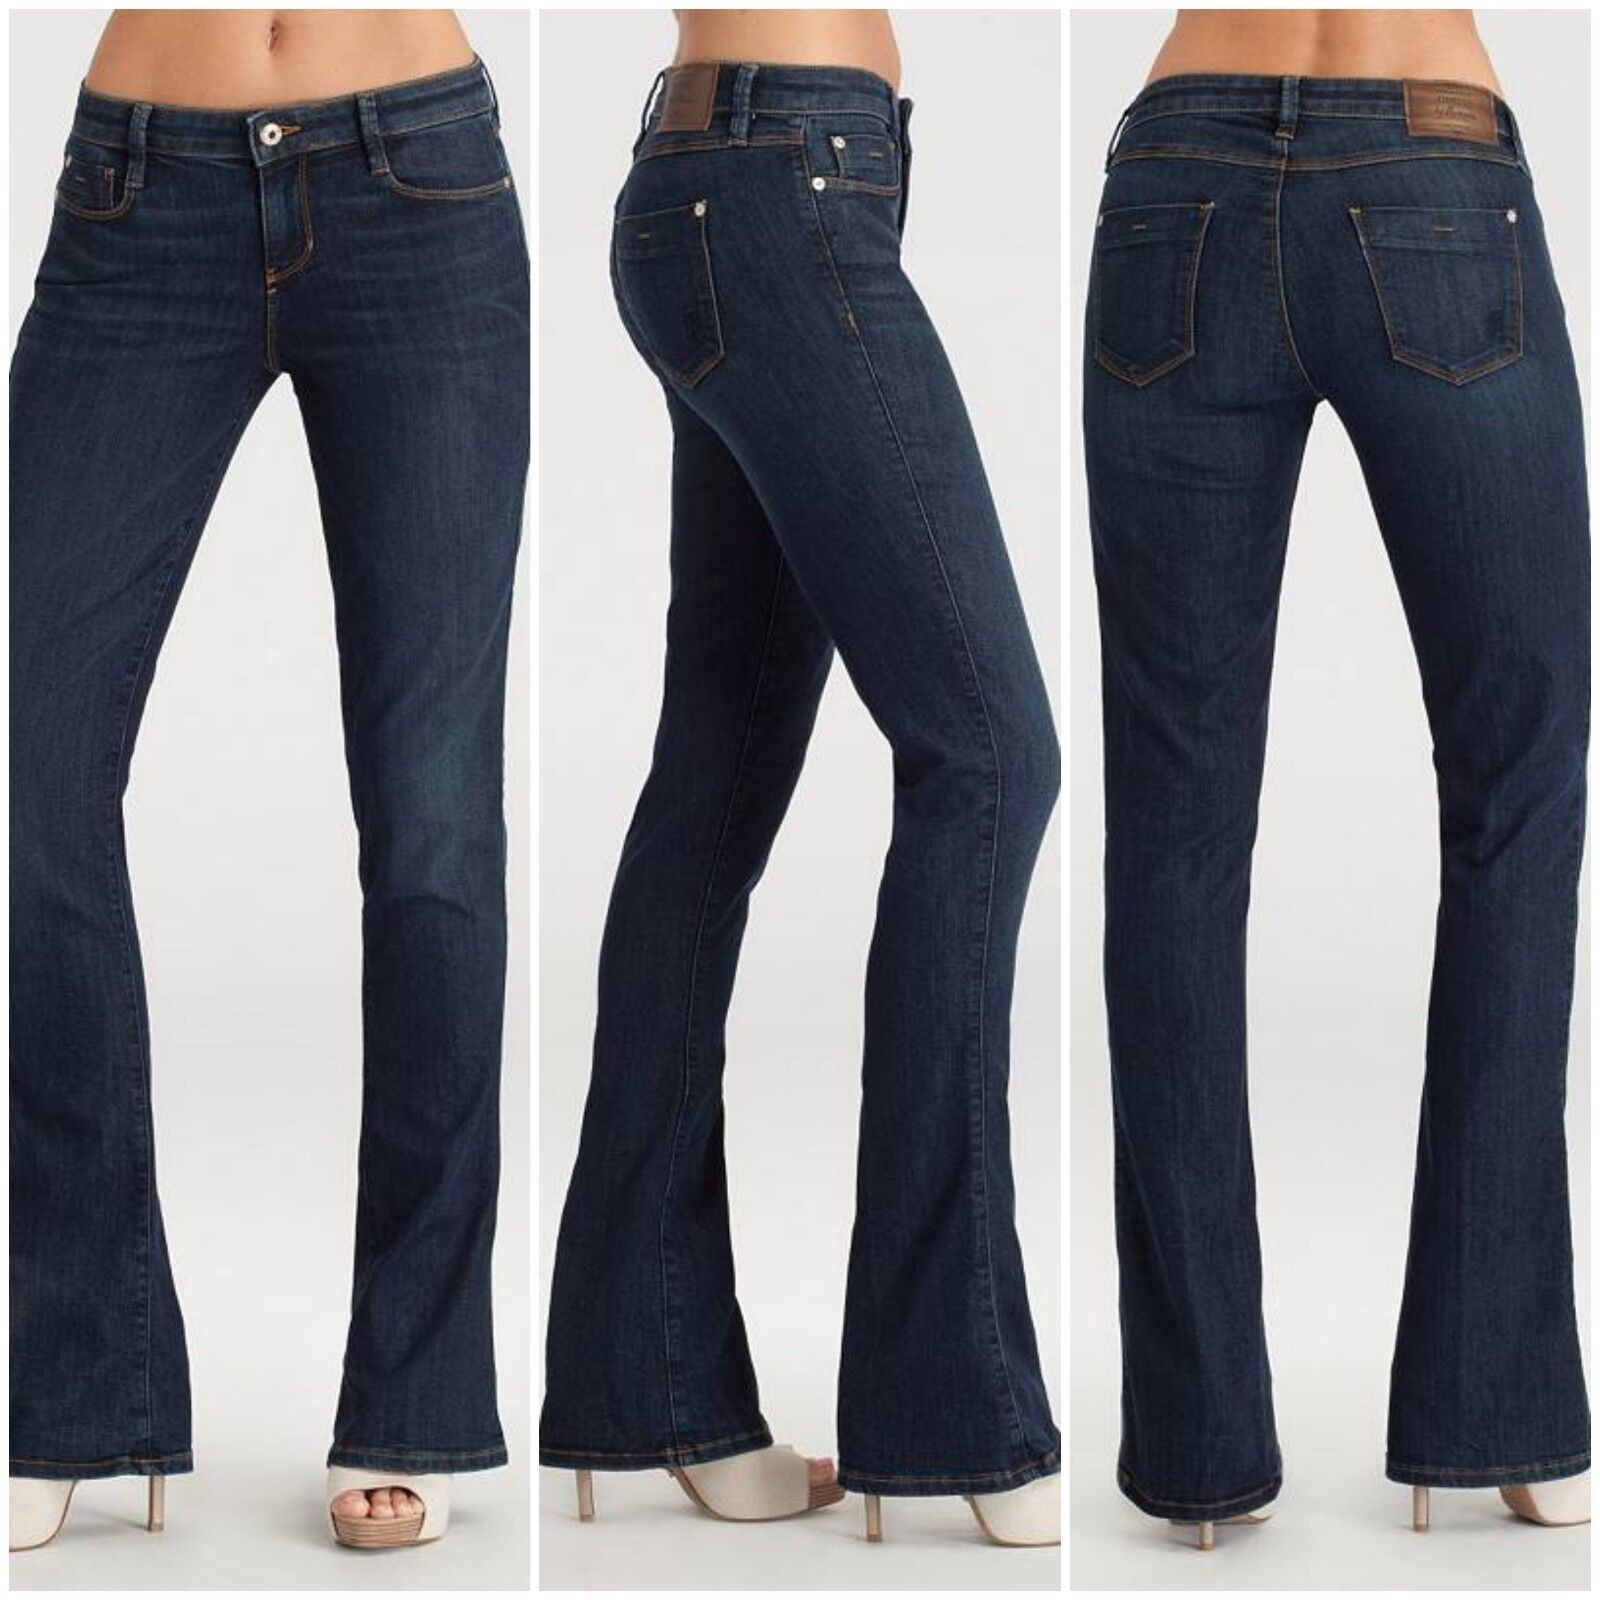 NWT Guess by Marciano Mini Flare Jean size 24